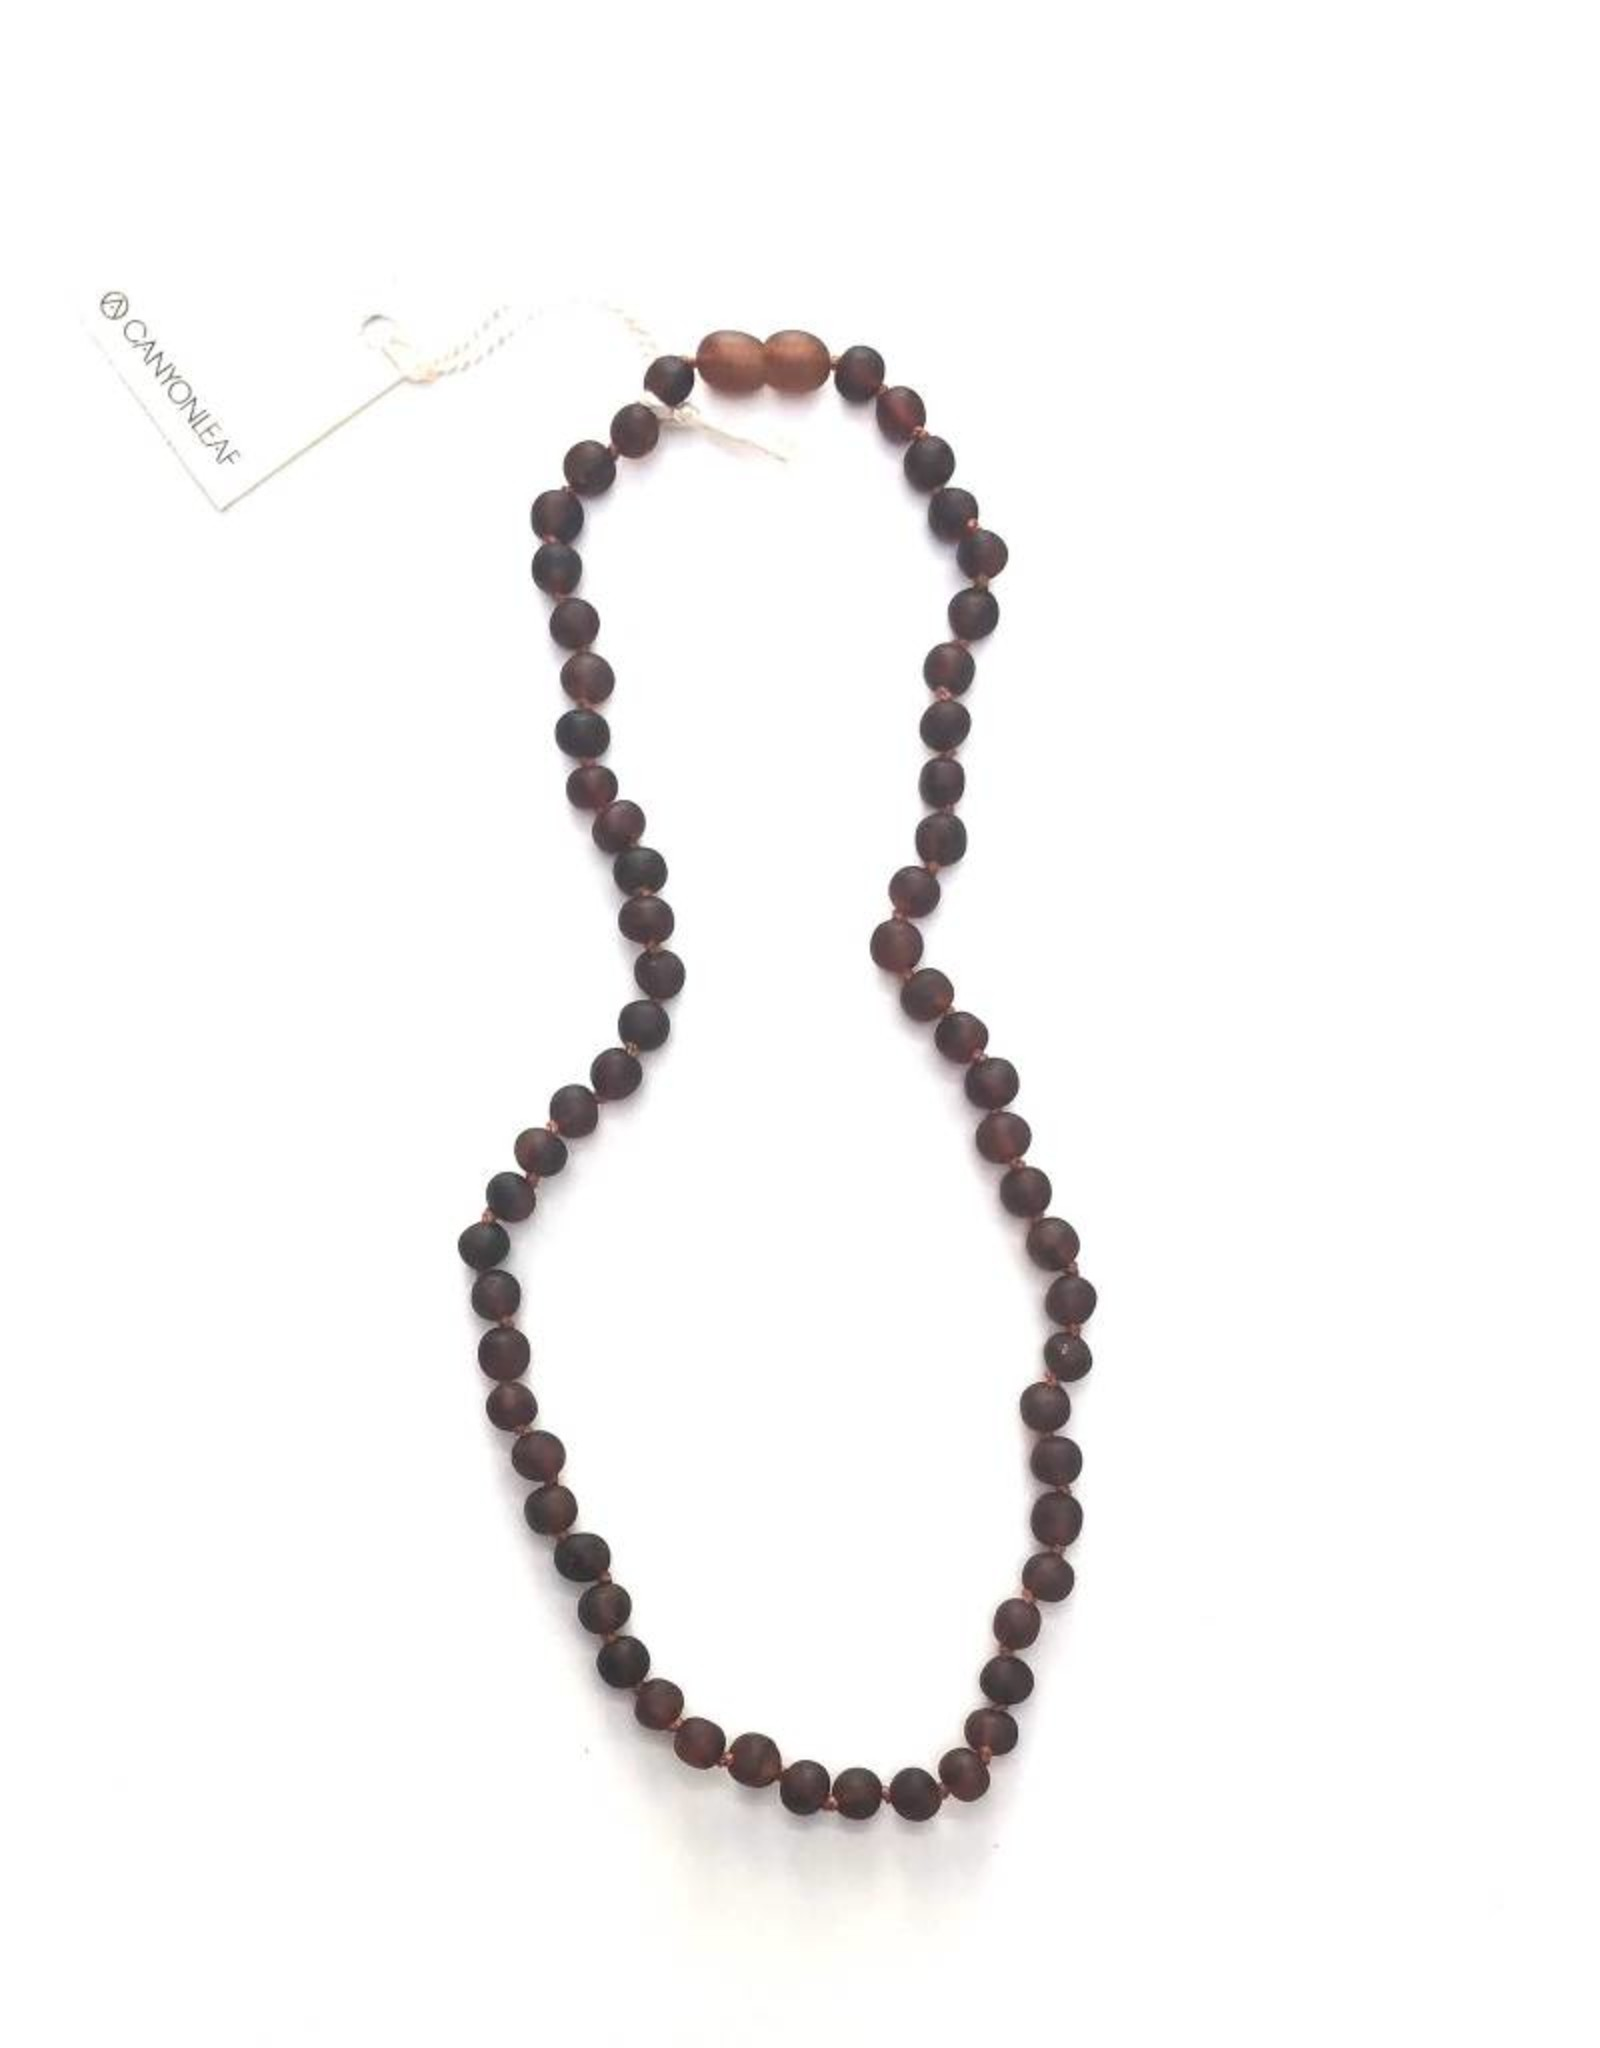 Canyon Leaf Raw Baltic Amber Adult Necklace- Simple